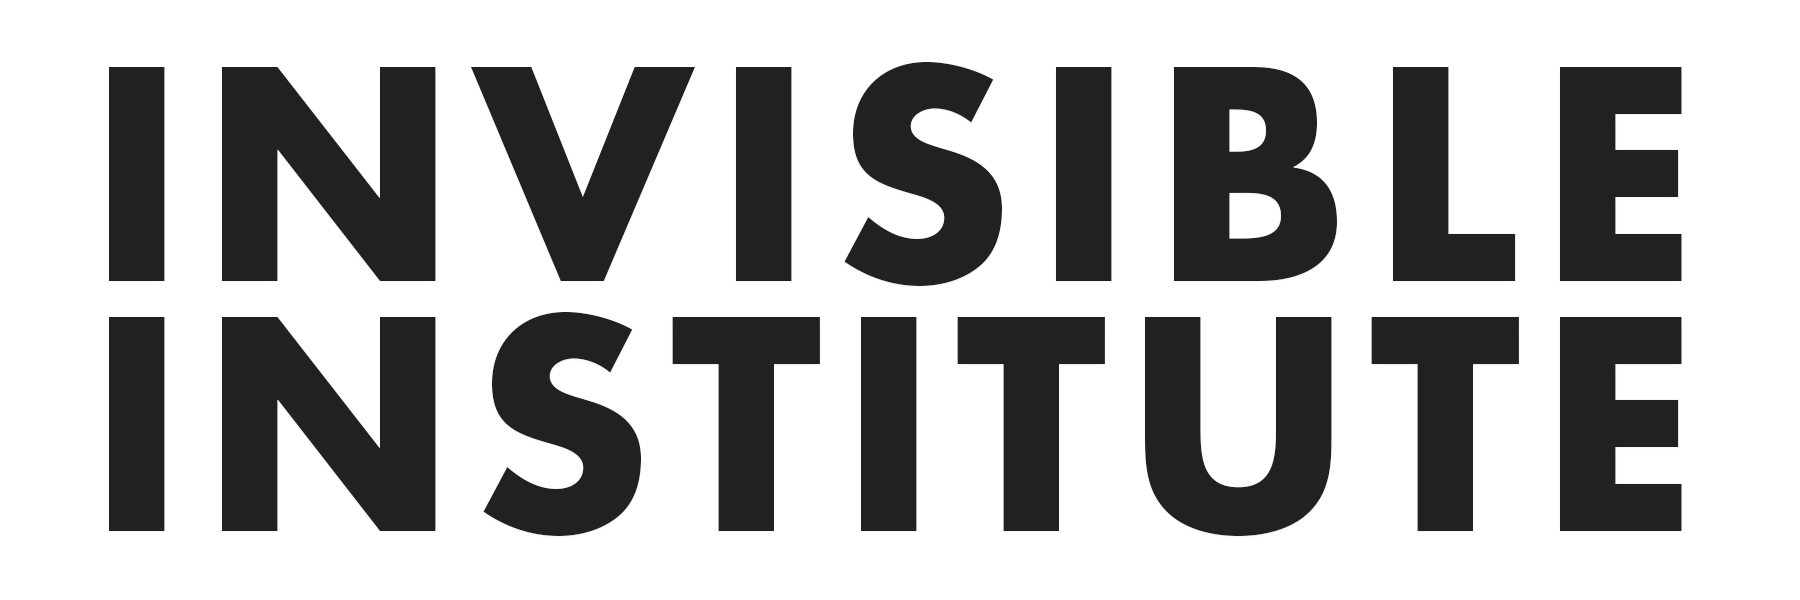 Invisible Institute logomark.png